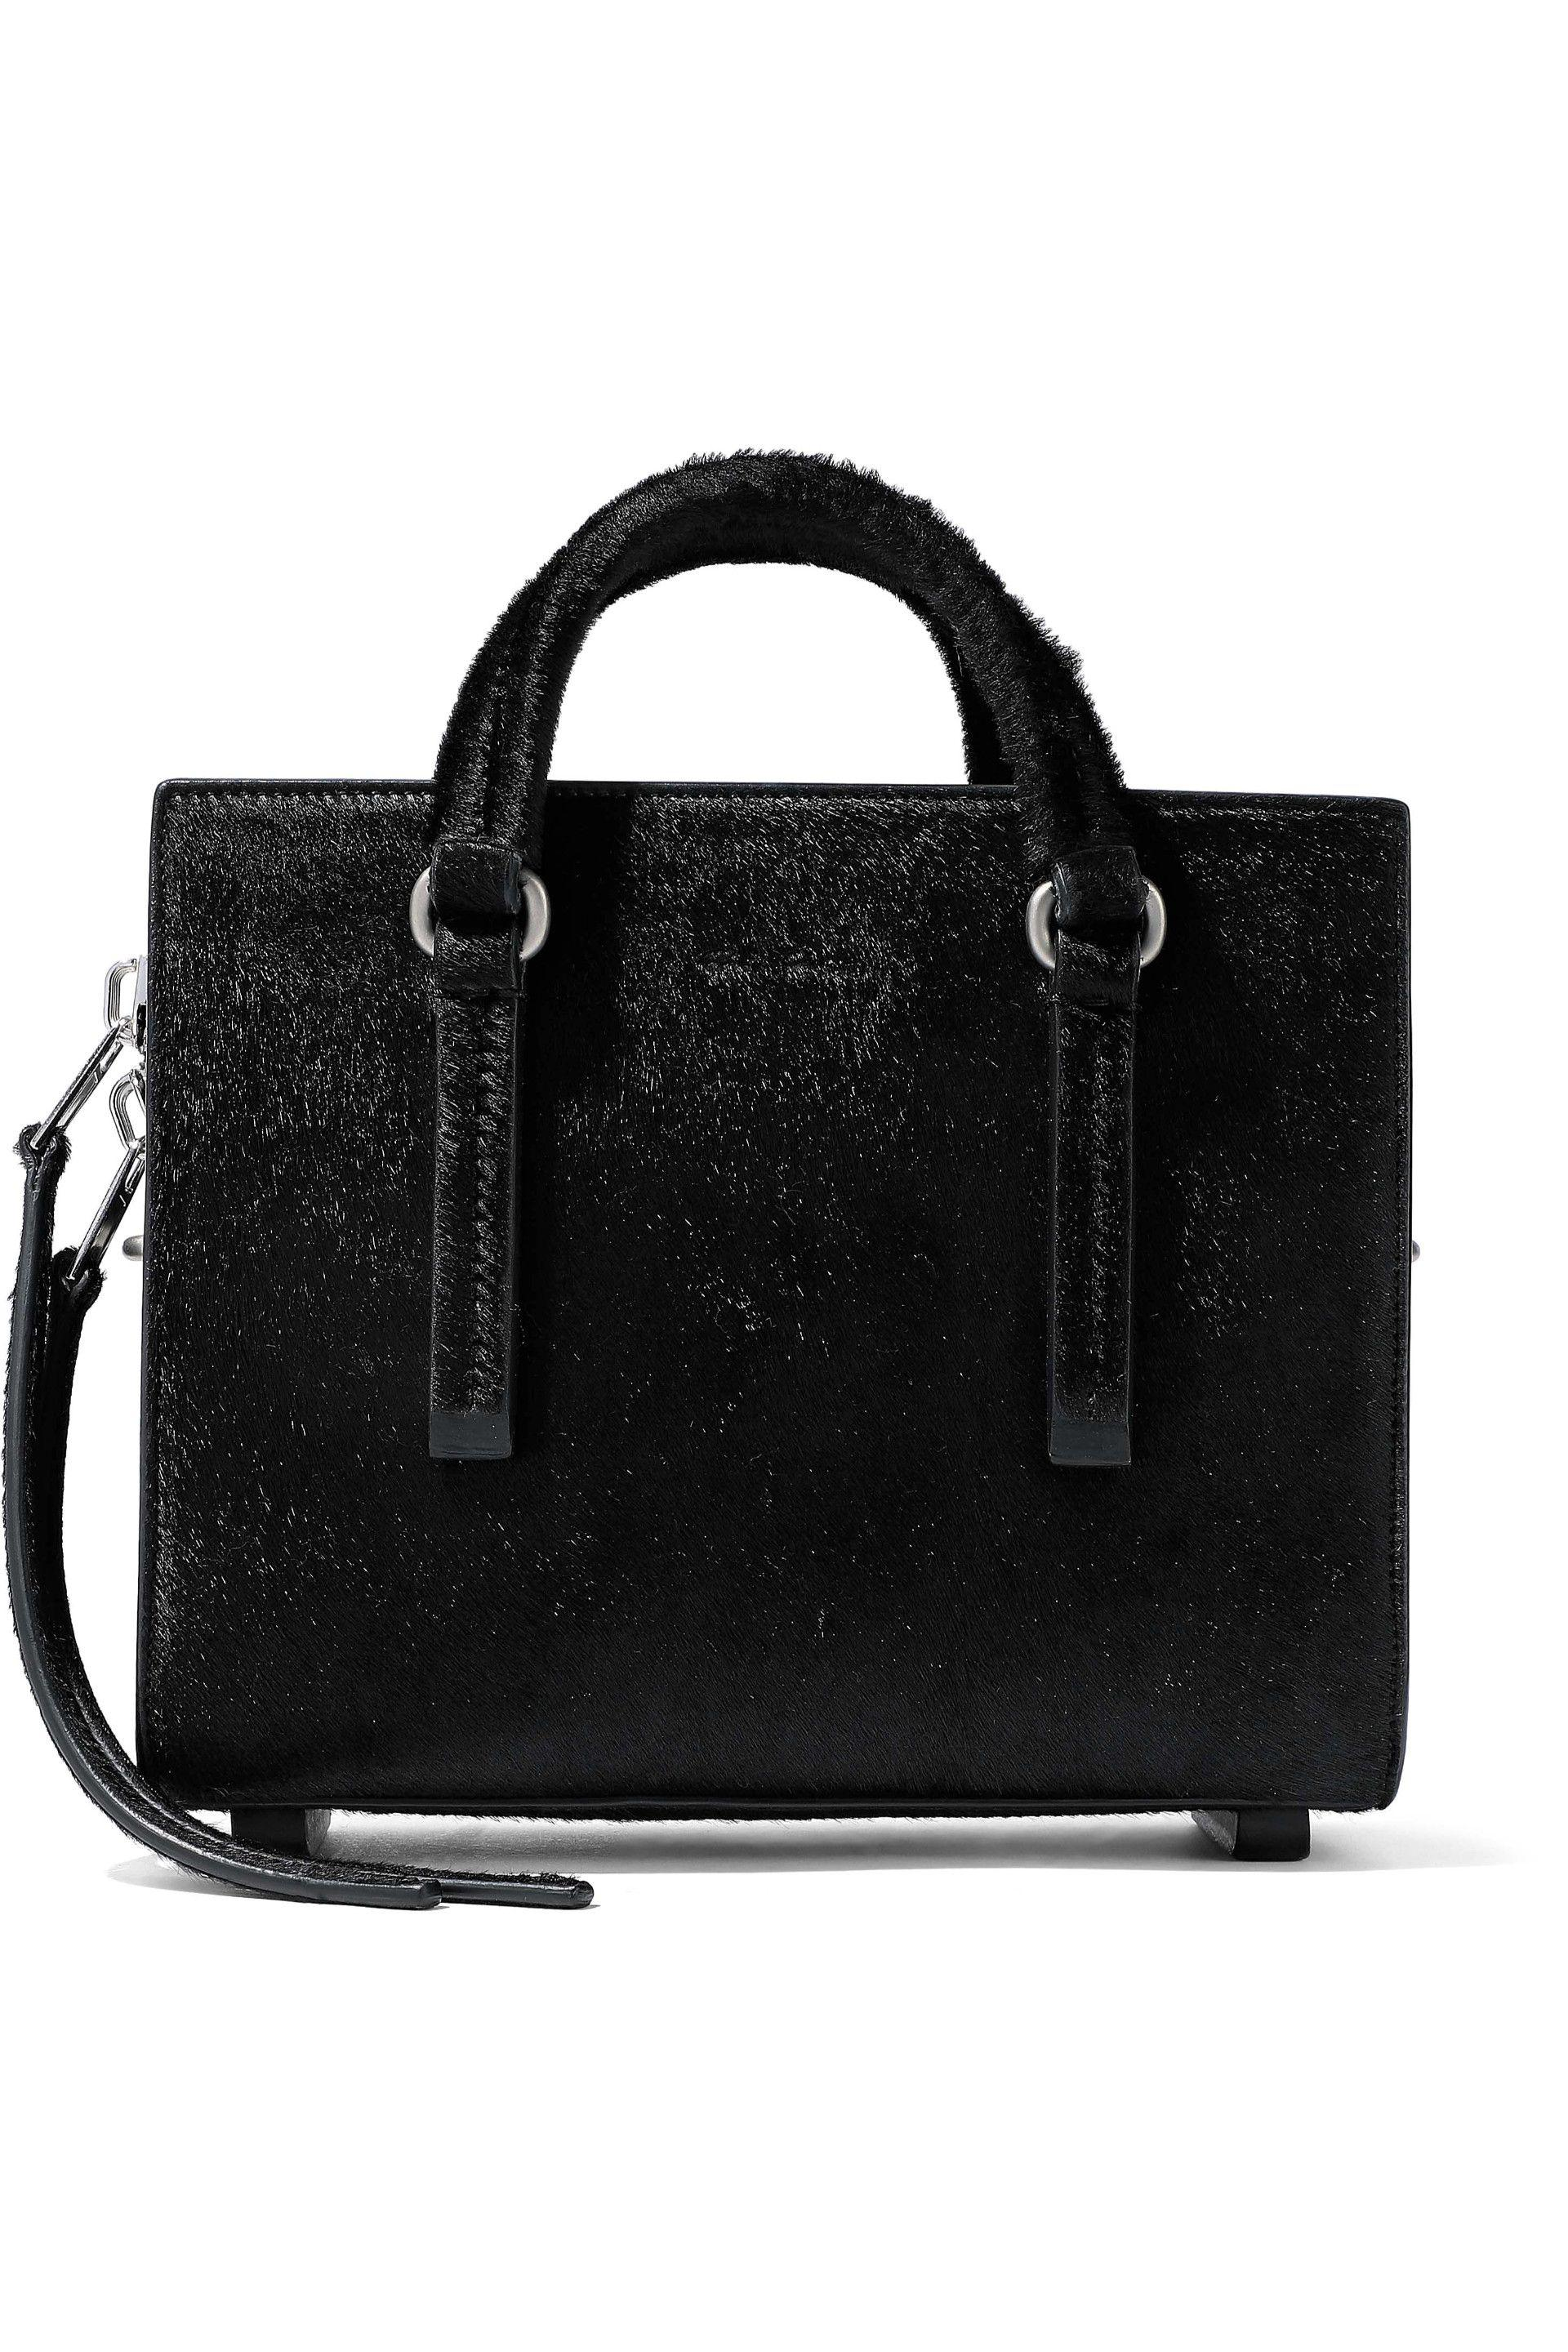 relaxed shoulder bag - Black Rick Owens UzbSu